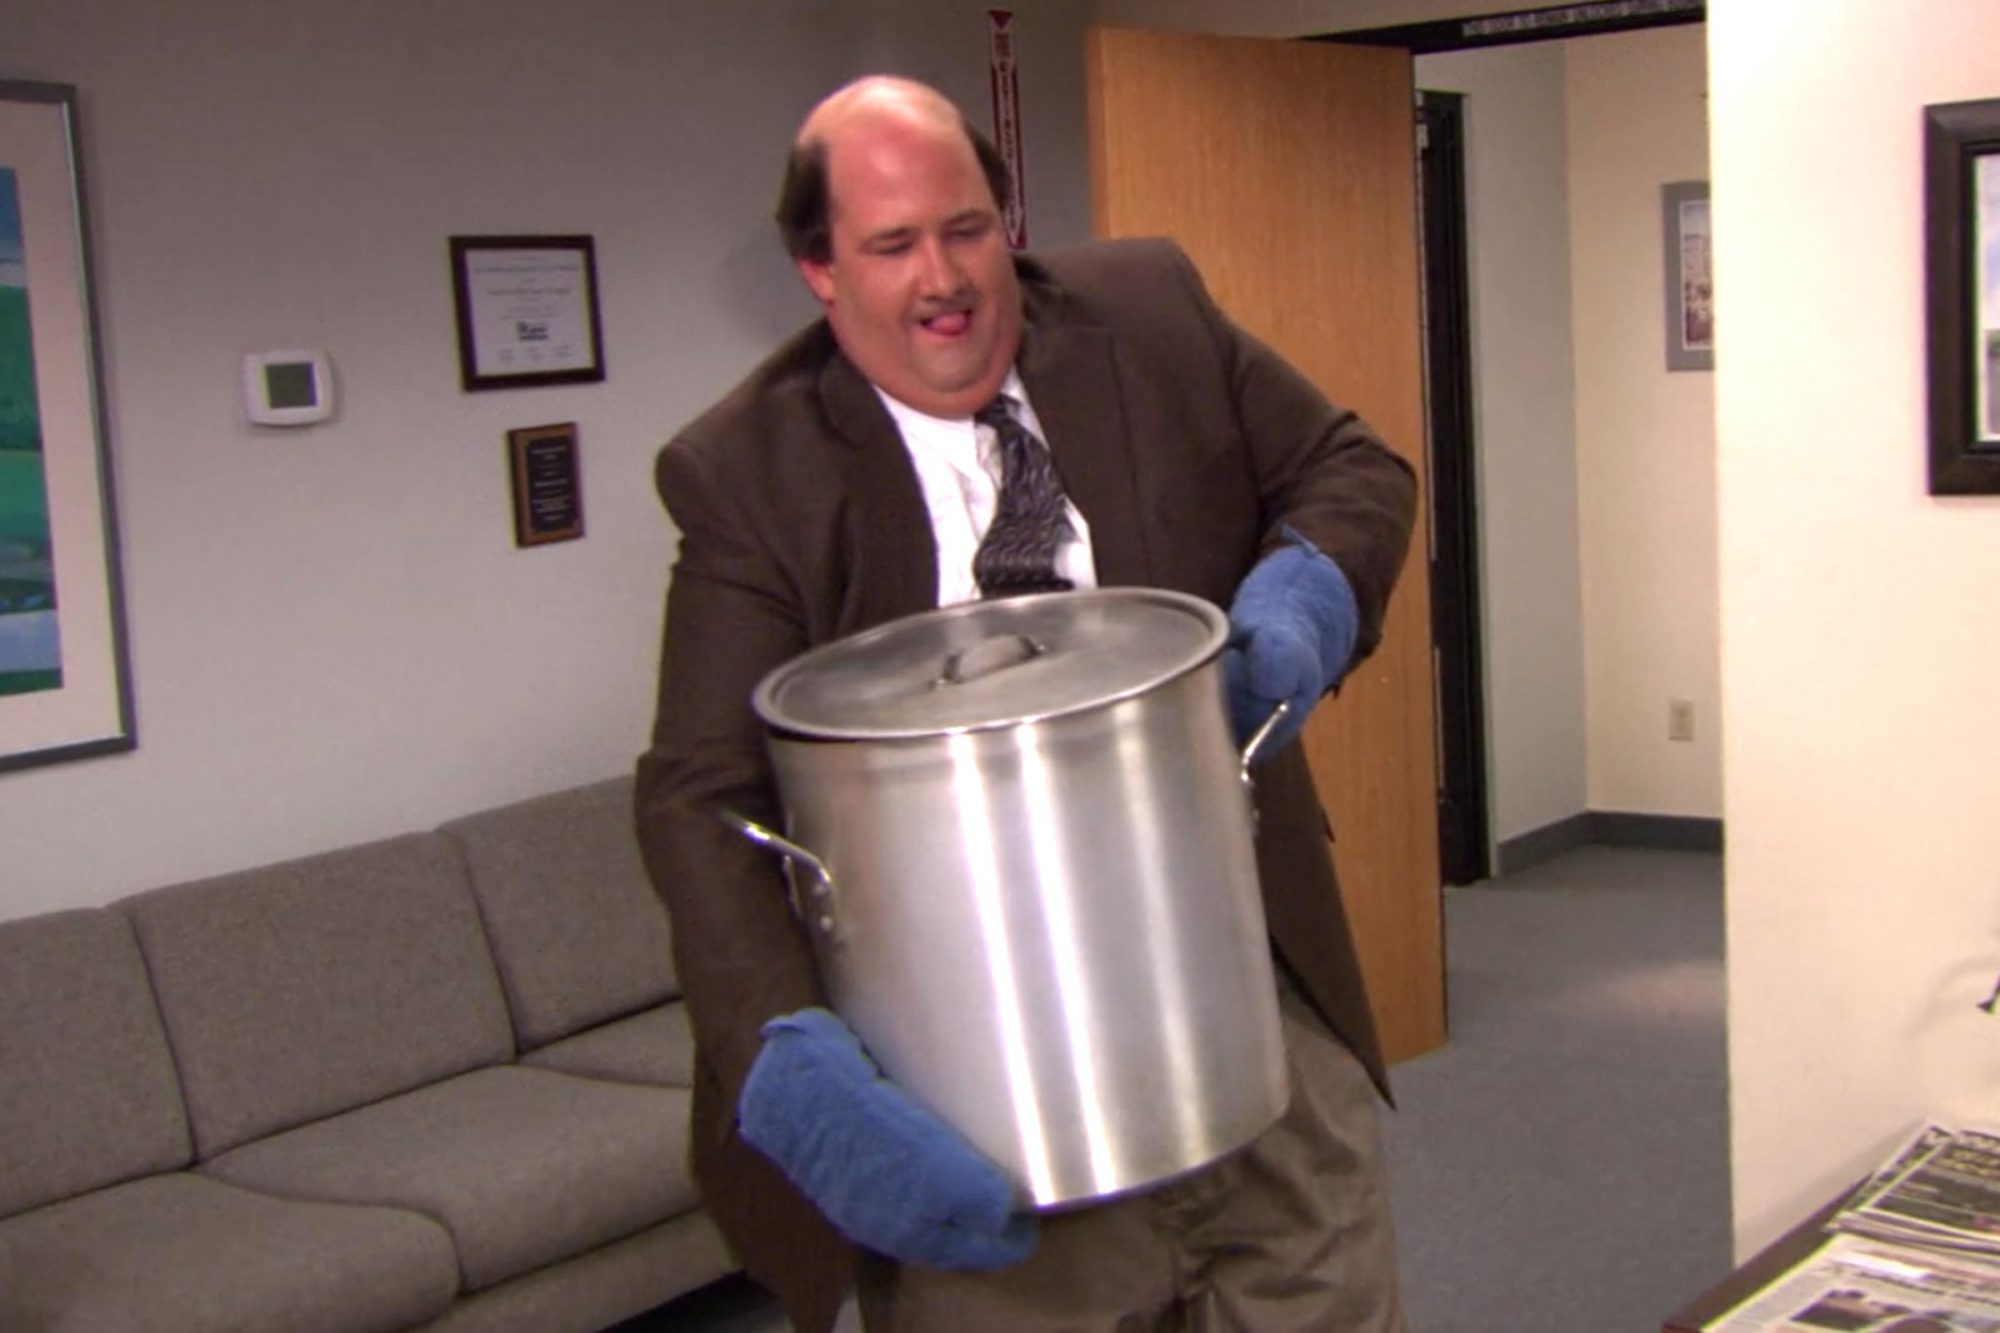 Here S How To Make Kevin S Famous Chili From The Office Ew Com